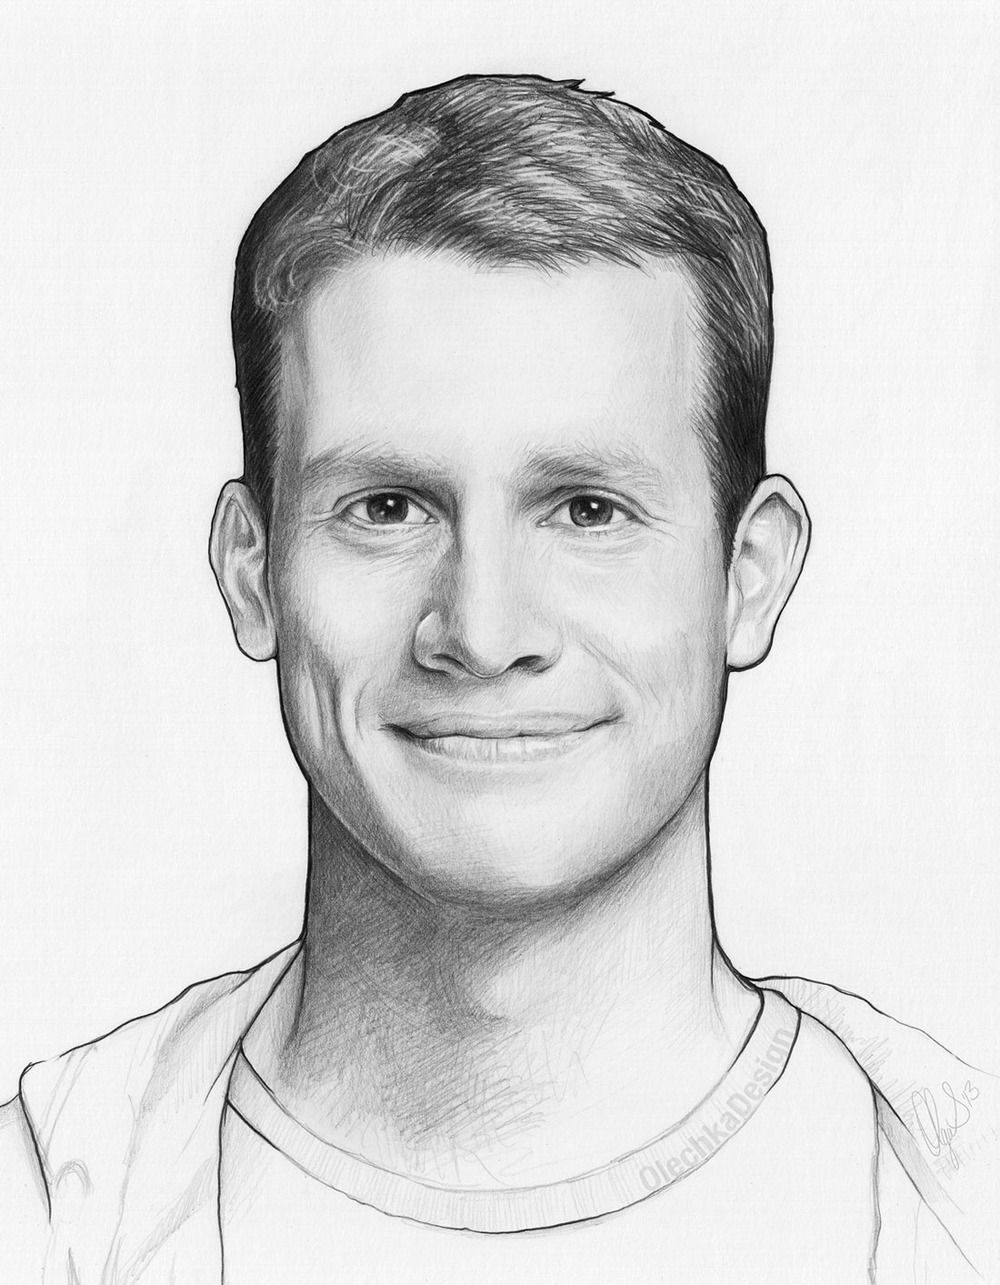 daniel-tosh-drawing-tumblr.jpg